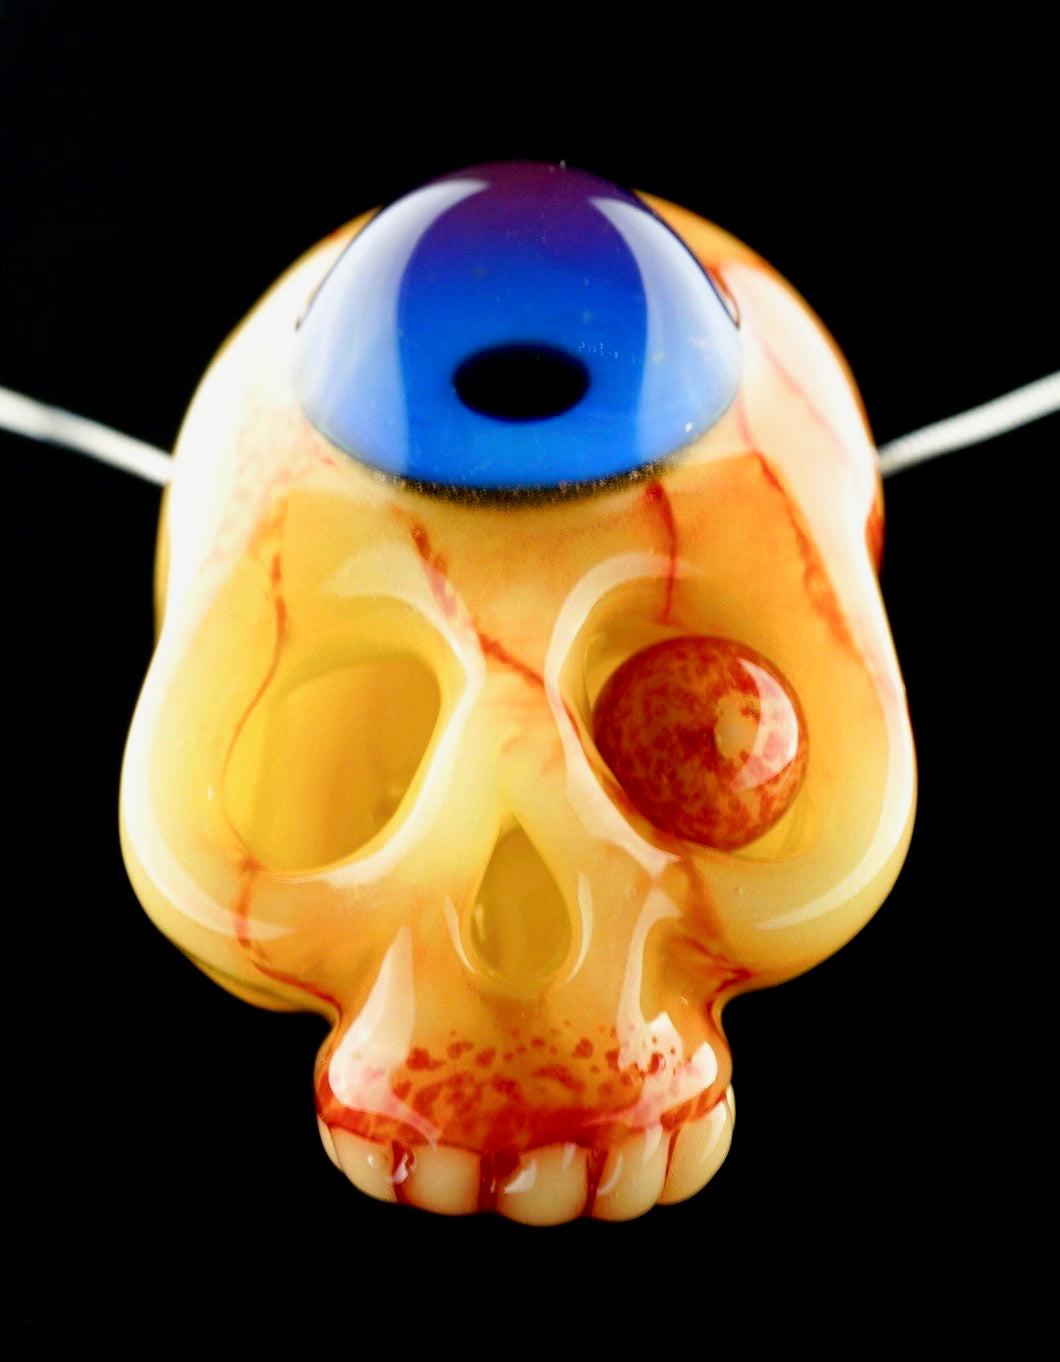 Aquarius Gory Eyeball Skull